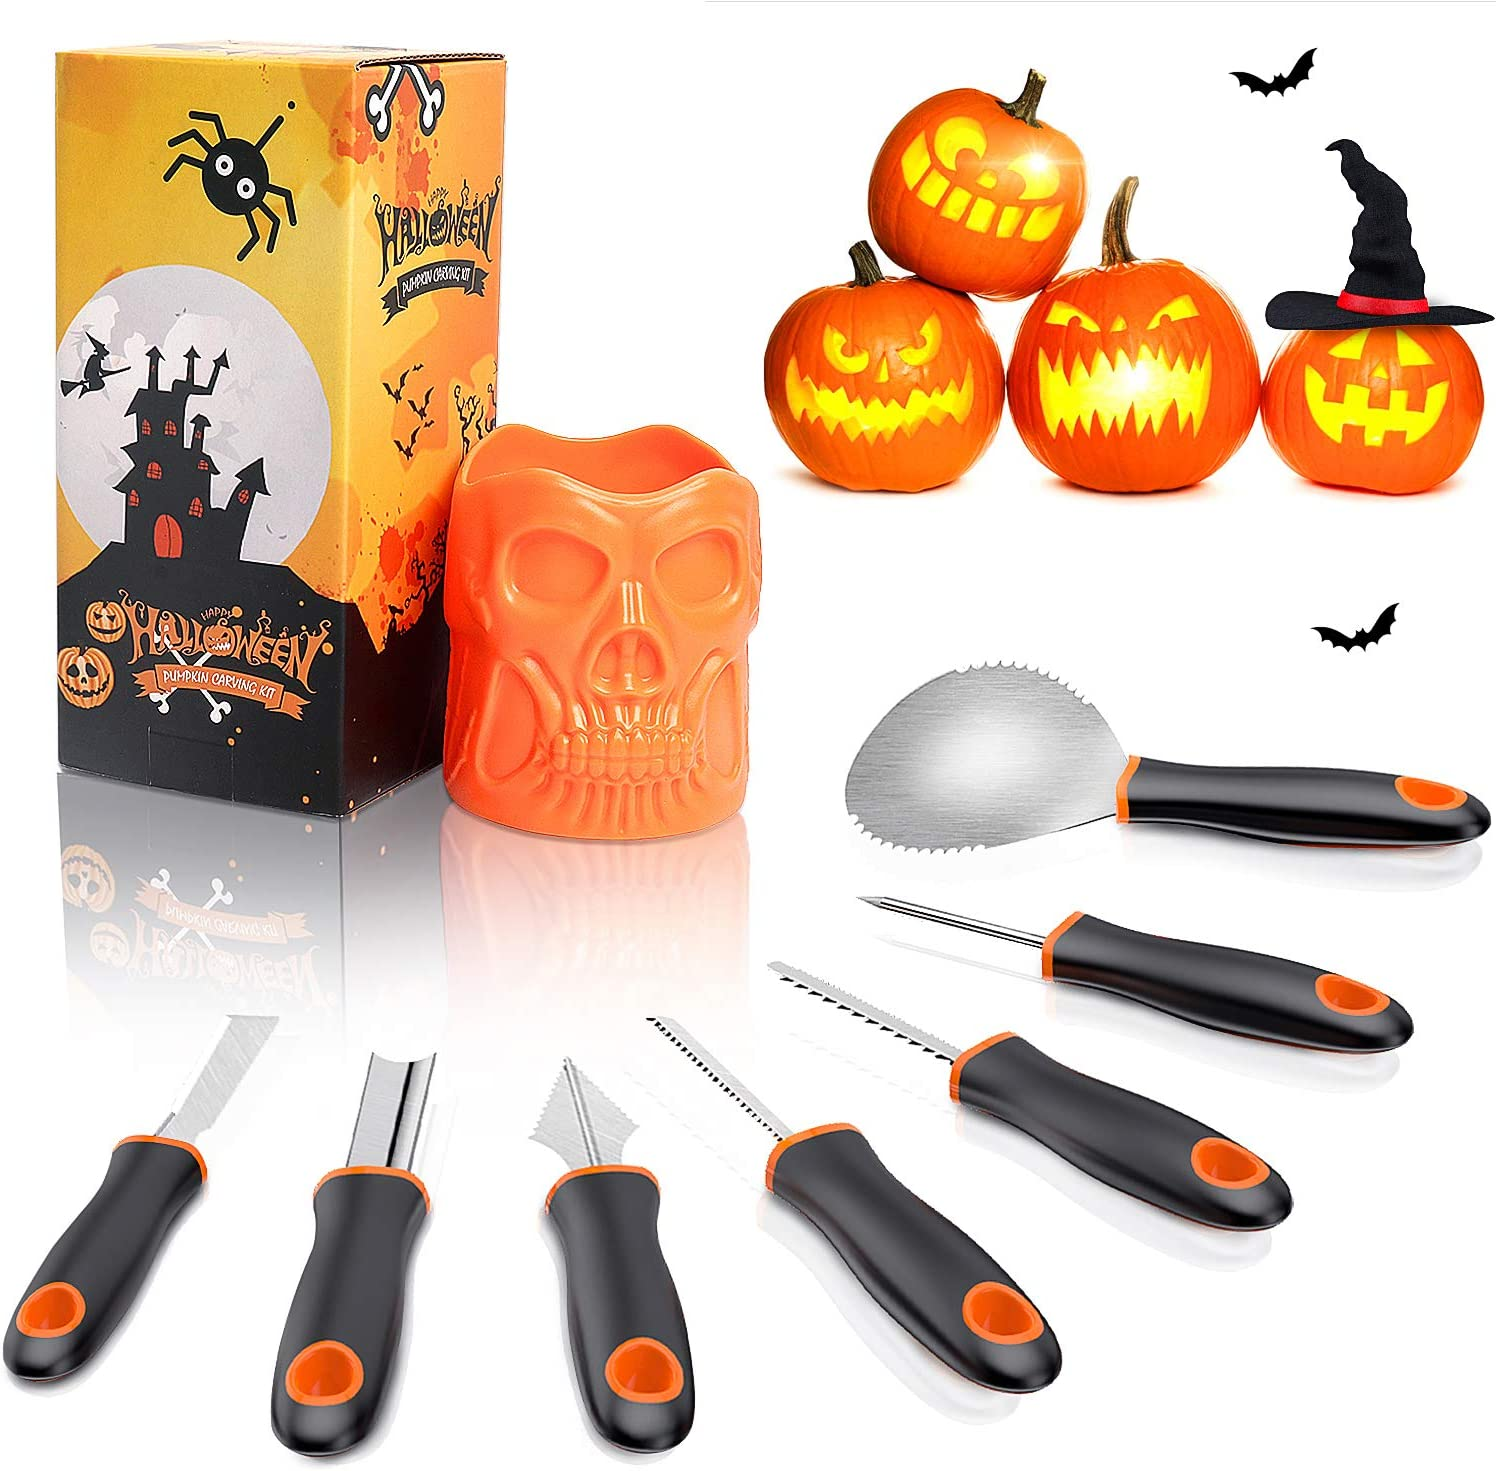 Halloween Pumpkin Carving Kit QcoQce mart Sharp Steel Our shop most popular Stainless 7Pcs